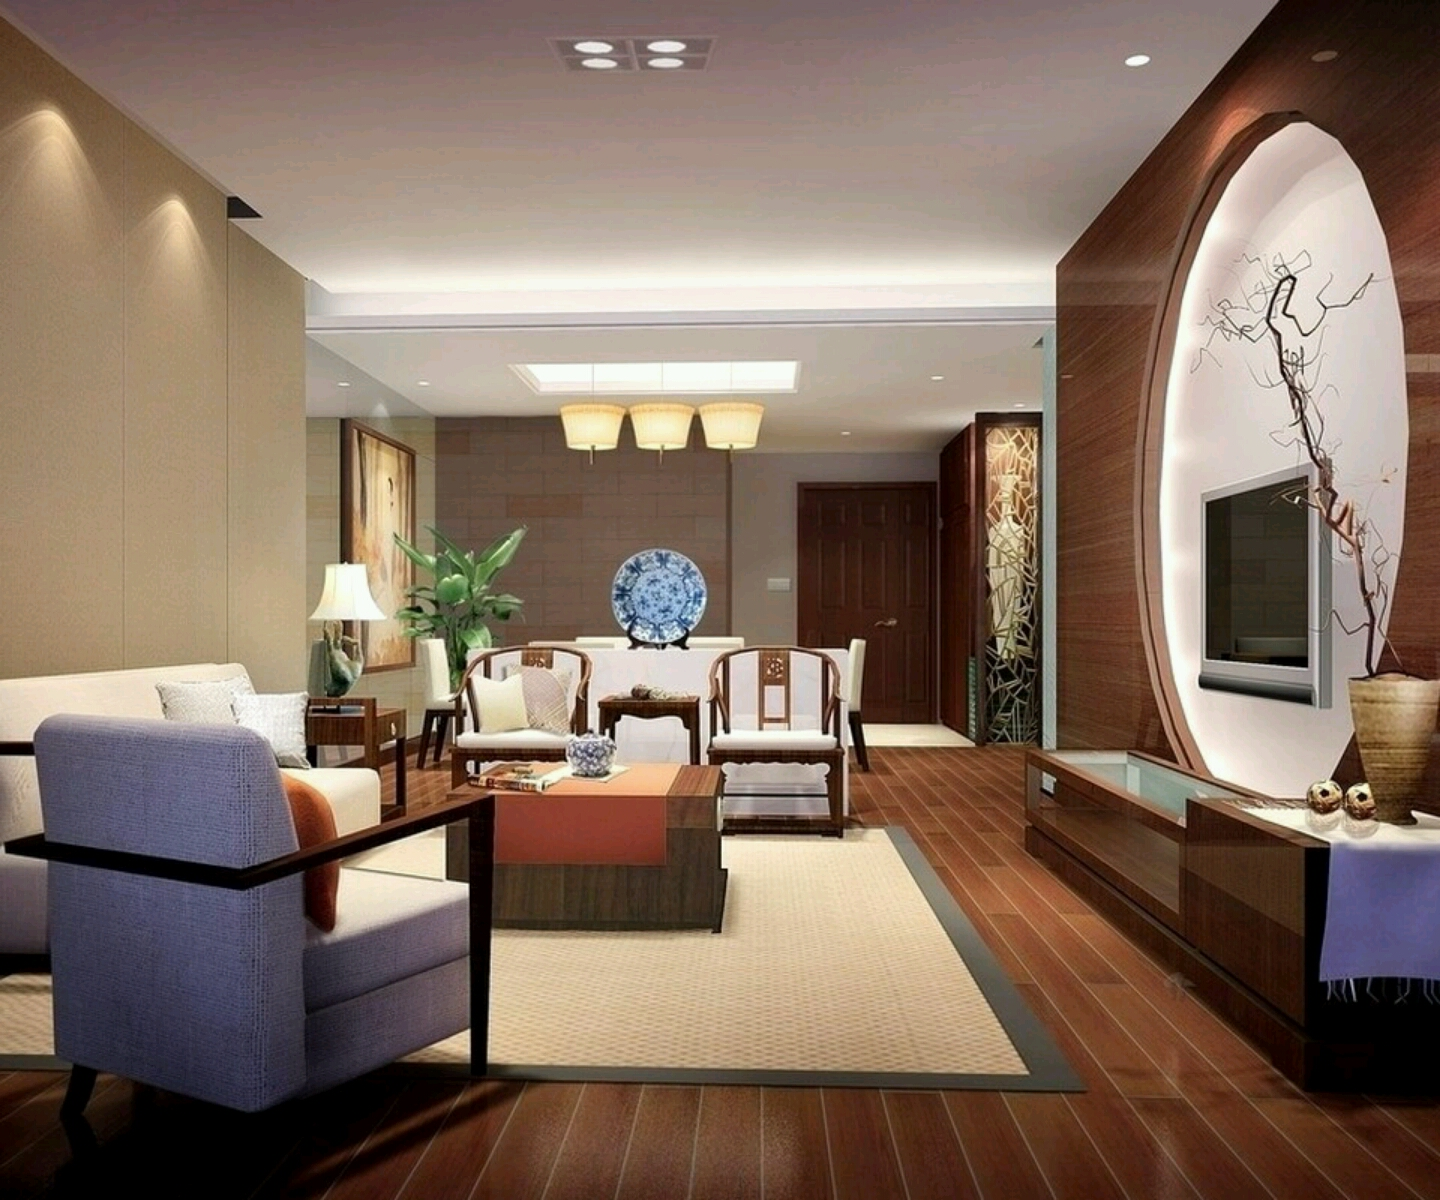 Interior home decorations luxury interior decorating ideas - Interior Decoration Living Room Designs Ideas Modern Home Designs